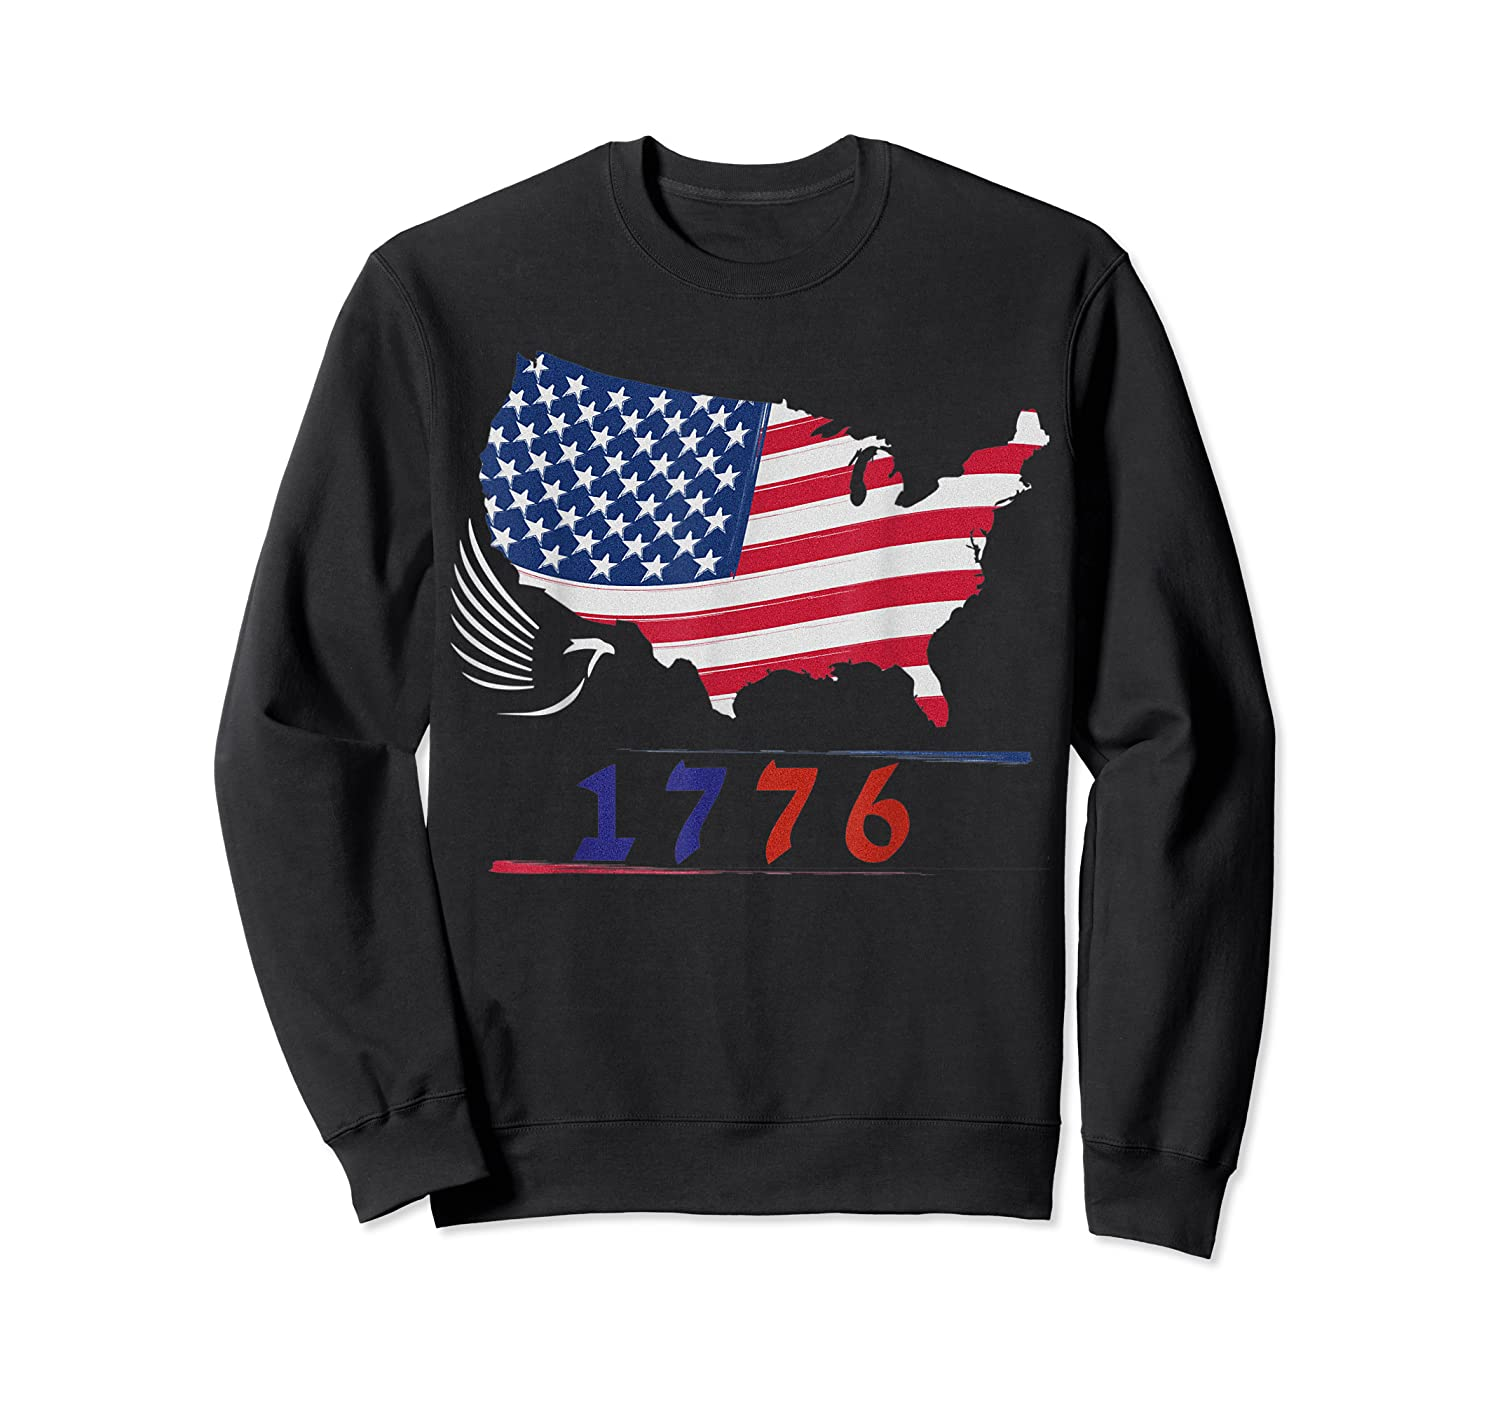 B Ross 1776 American Flag Eagle 4th Of July Shirts Crewneck Sweater